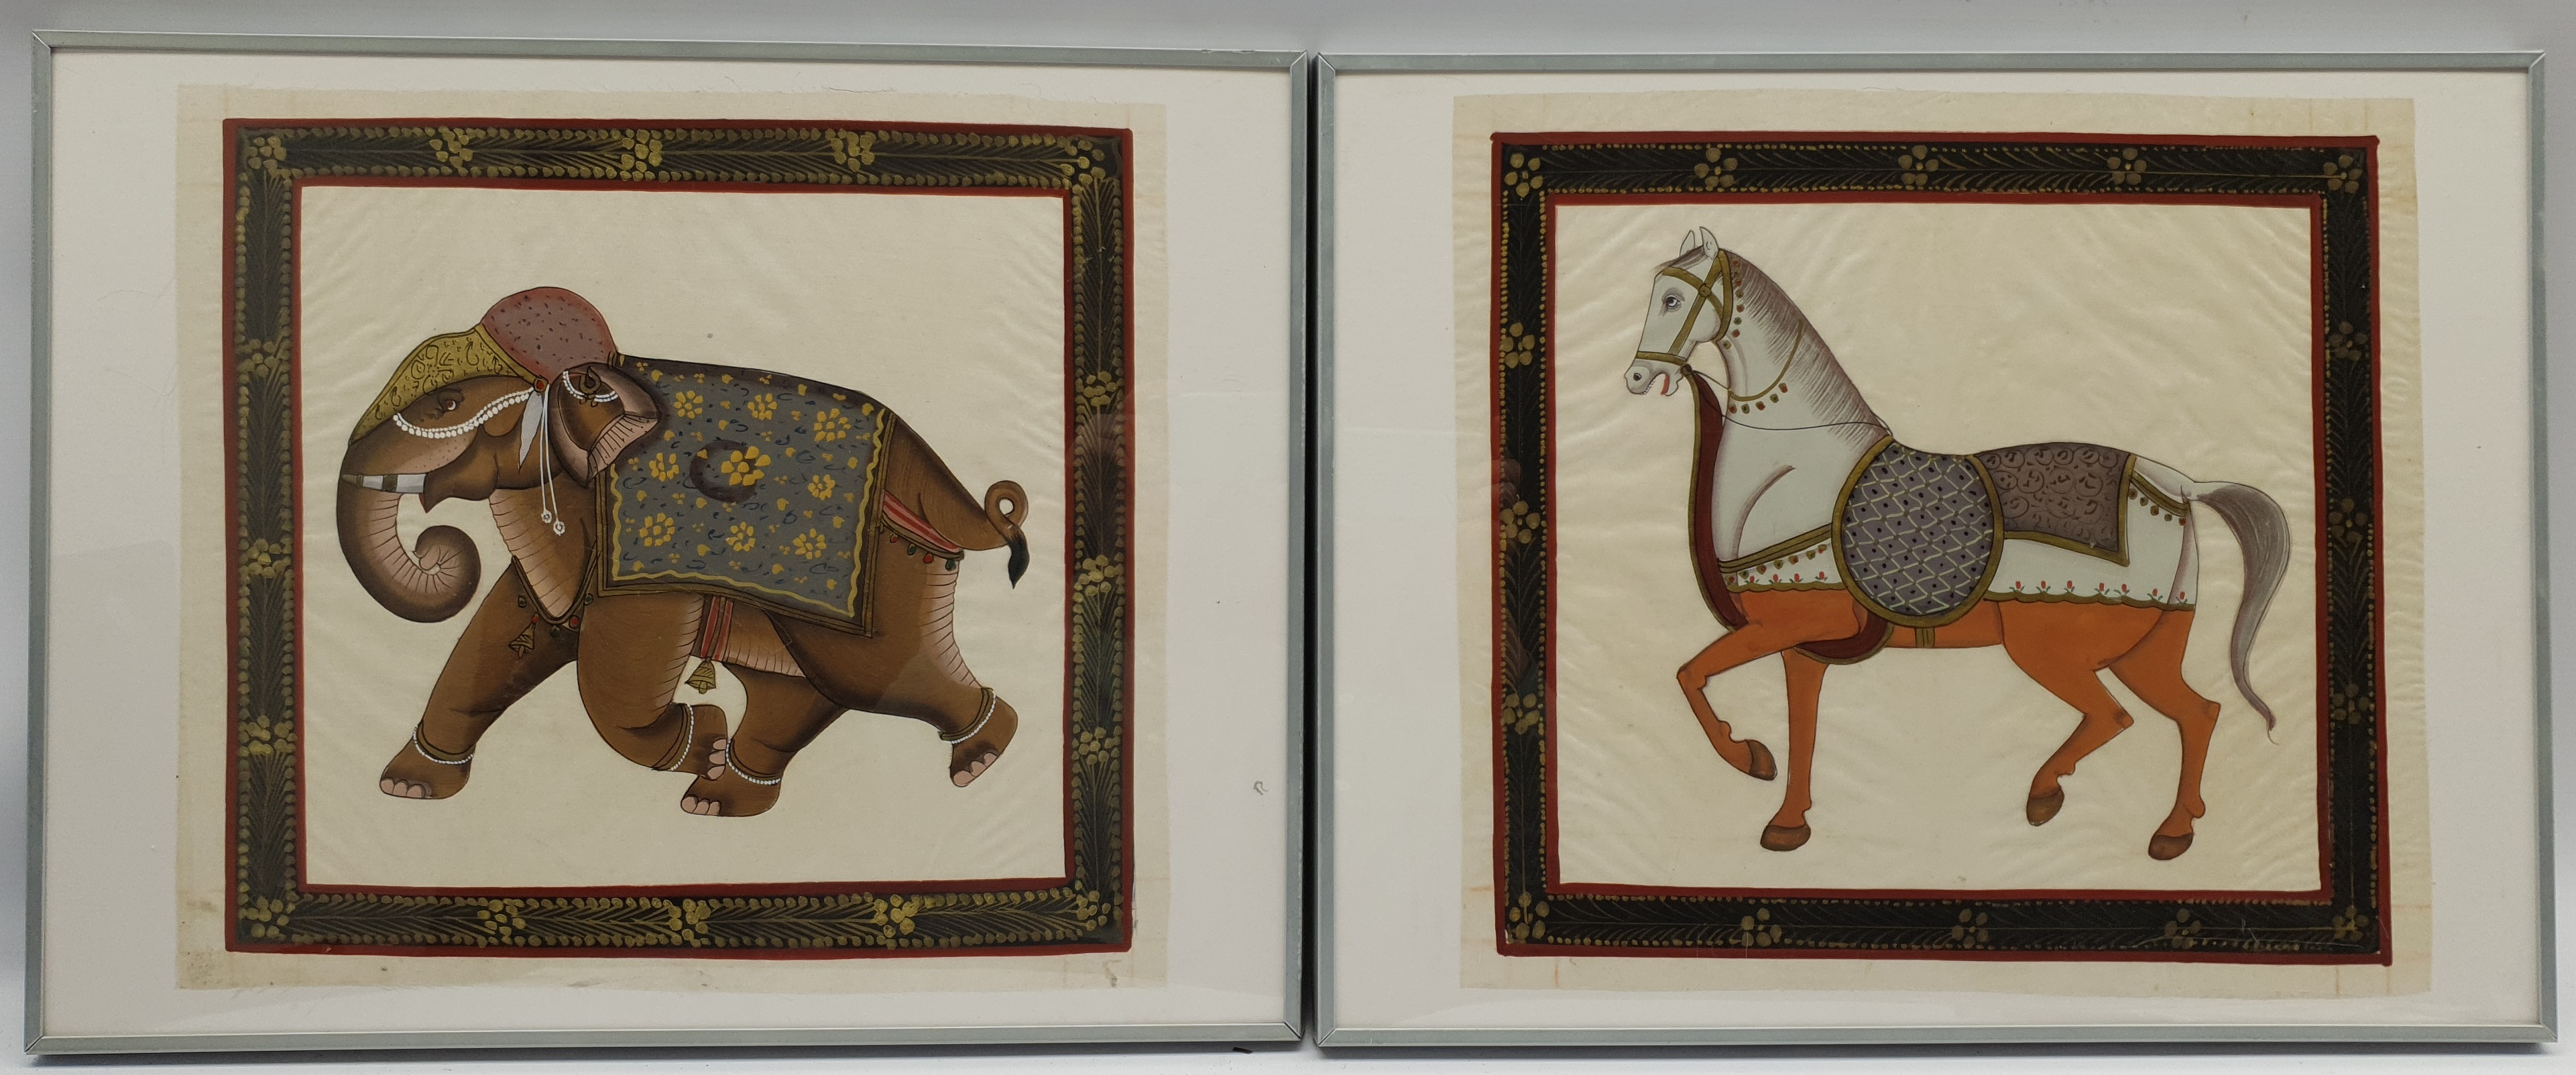 Mughal School (20th century): Horse and Elephant, pair paintings on fabric unsigned 36cm x 39cm (2) - Image 2 of 2